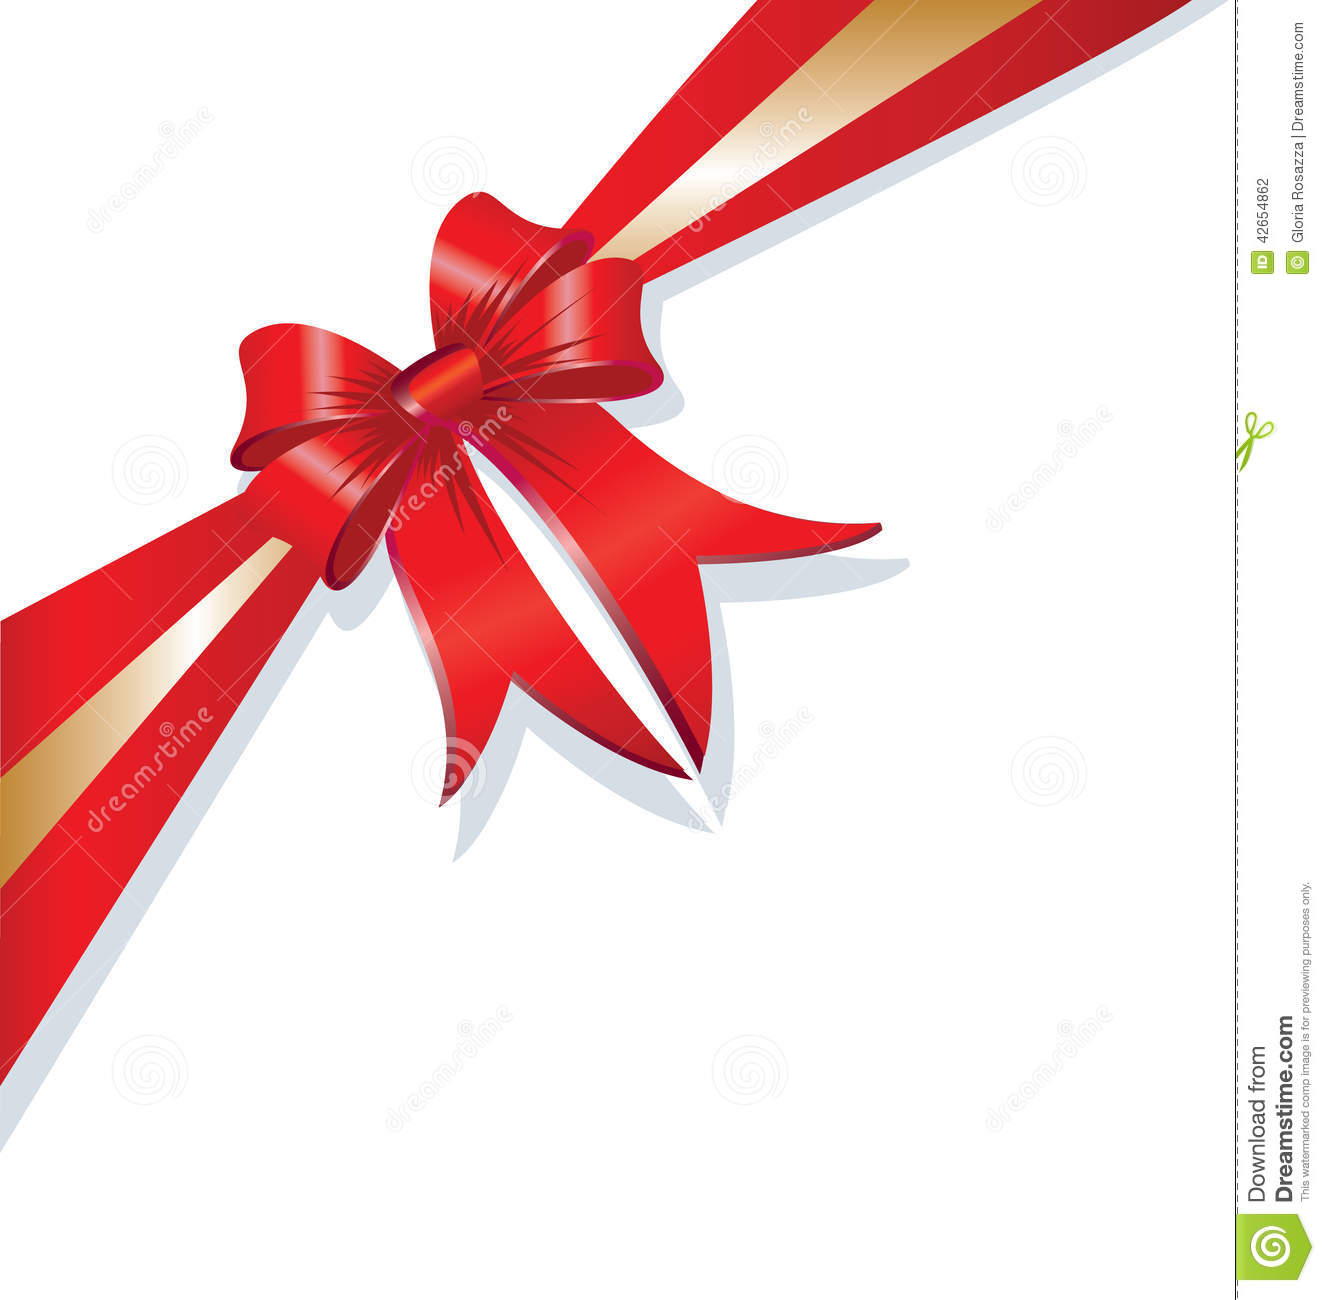 Vector Christmas Gift Ribbon Design Stock Vector - Image: 42654862